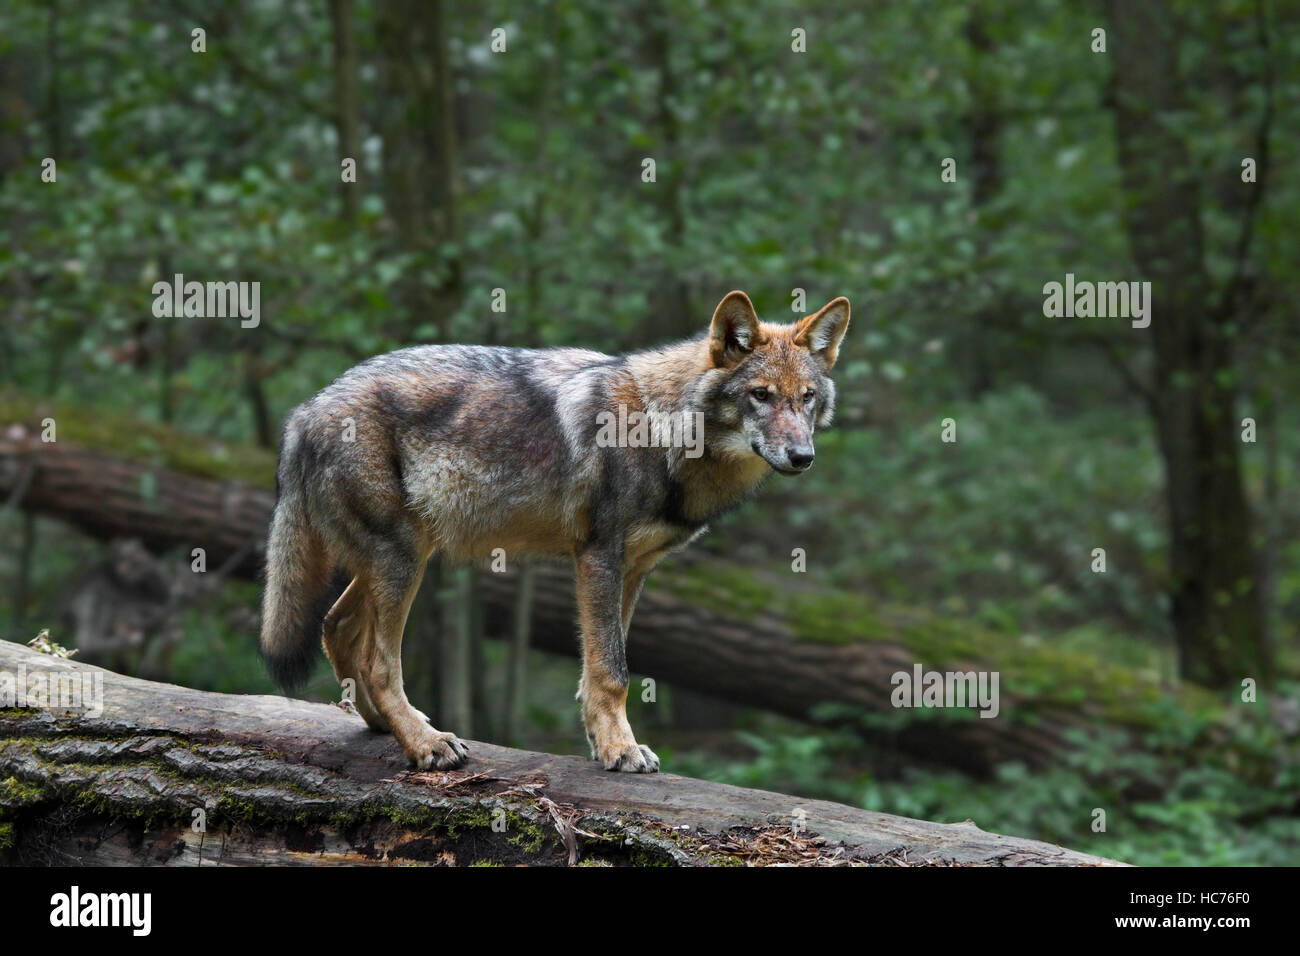 Solitary gray wolf / grey wolf (Canis lupus) on fallen tree trunk in forest - Stock Image